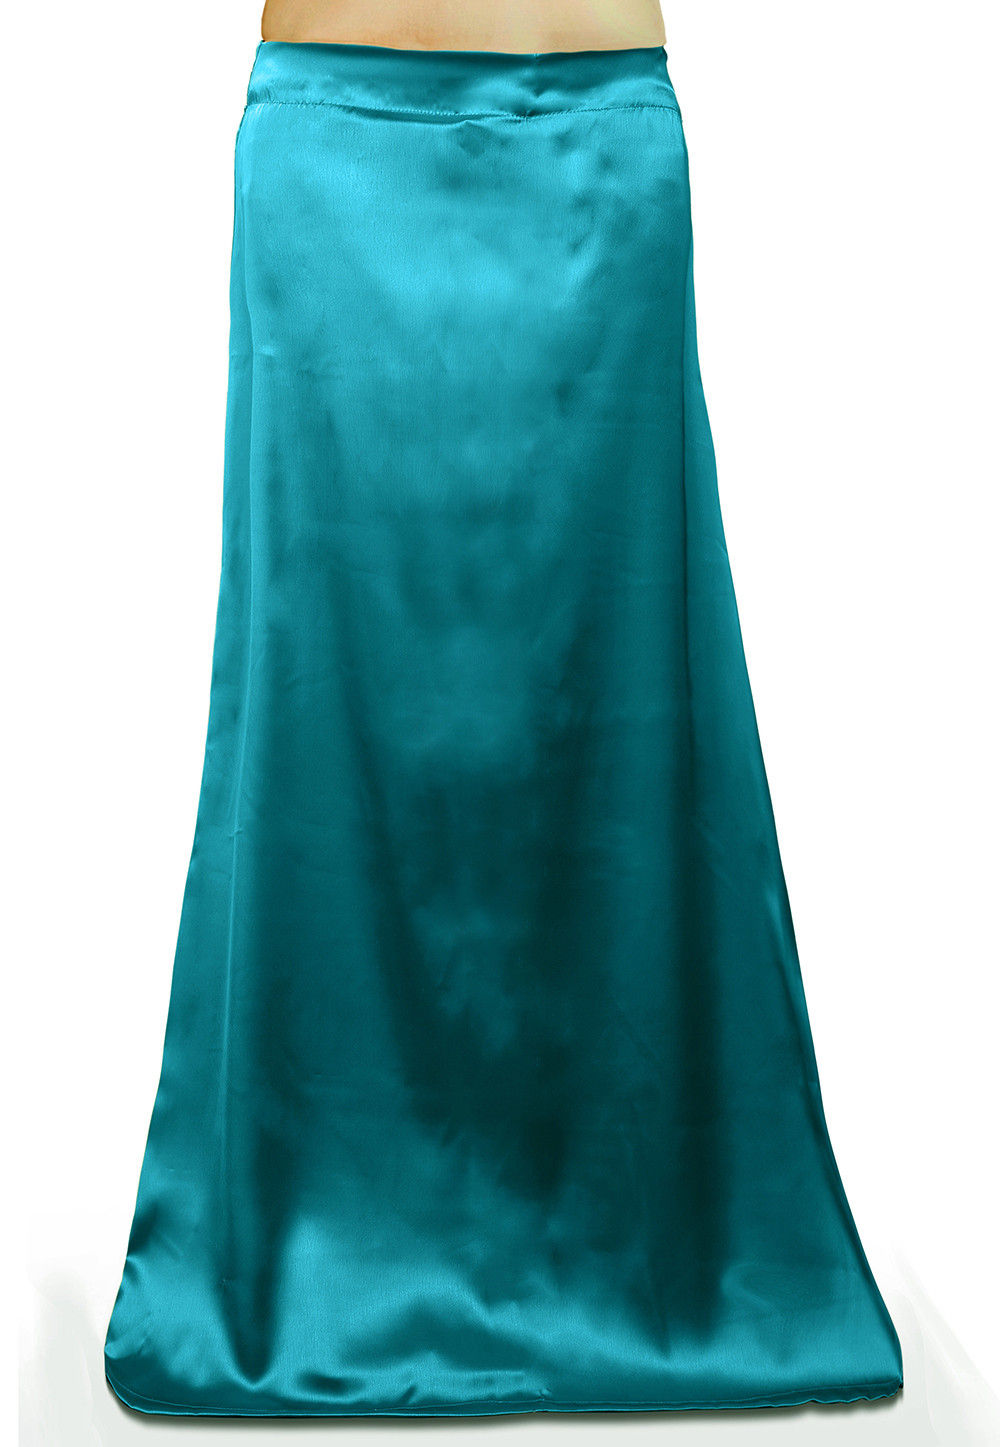 Satin Petticoat in Teal Blue